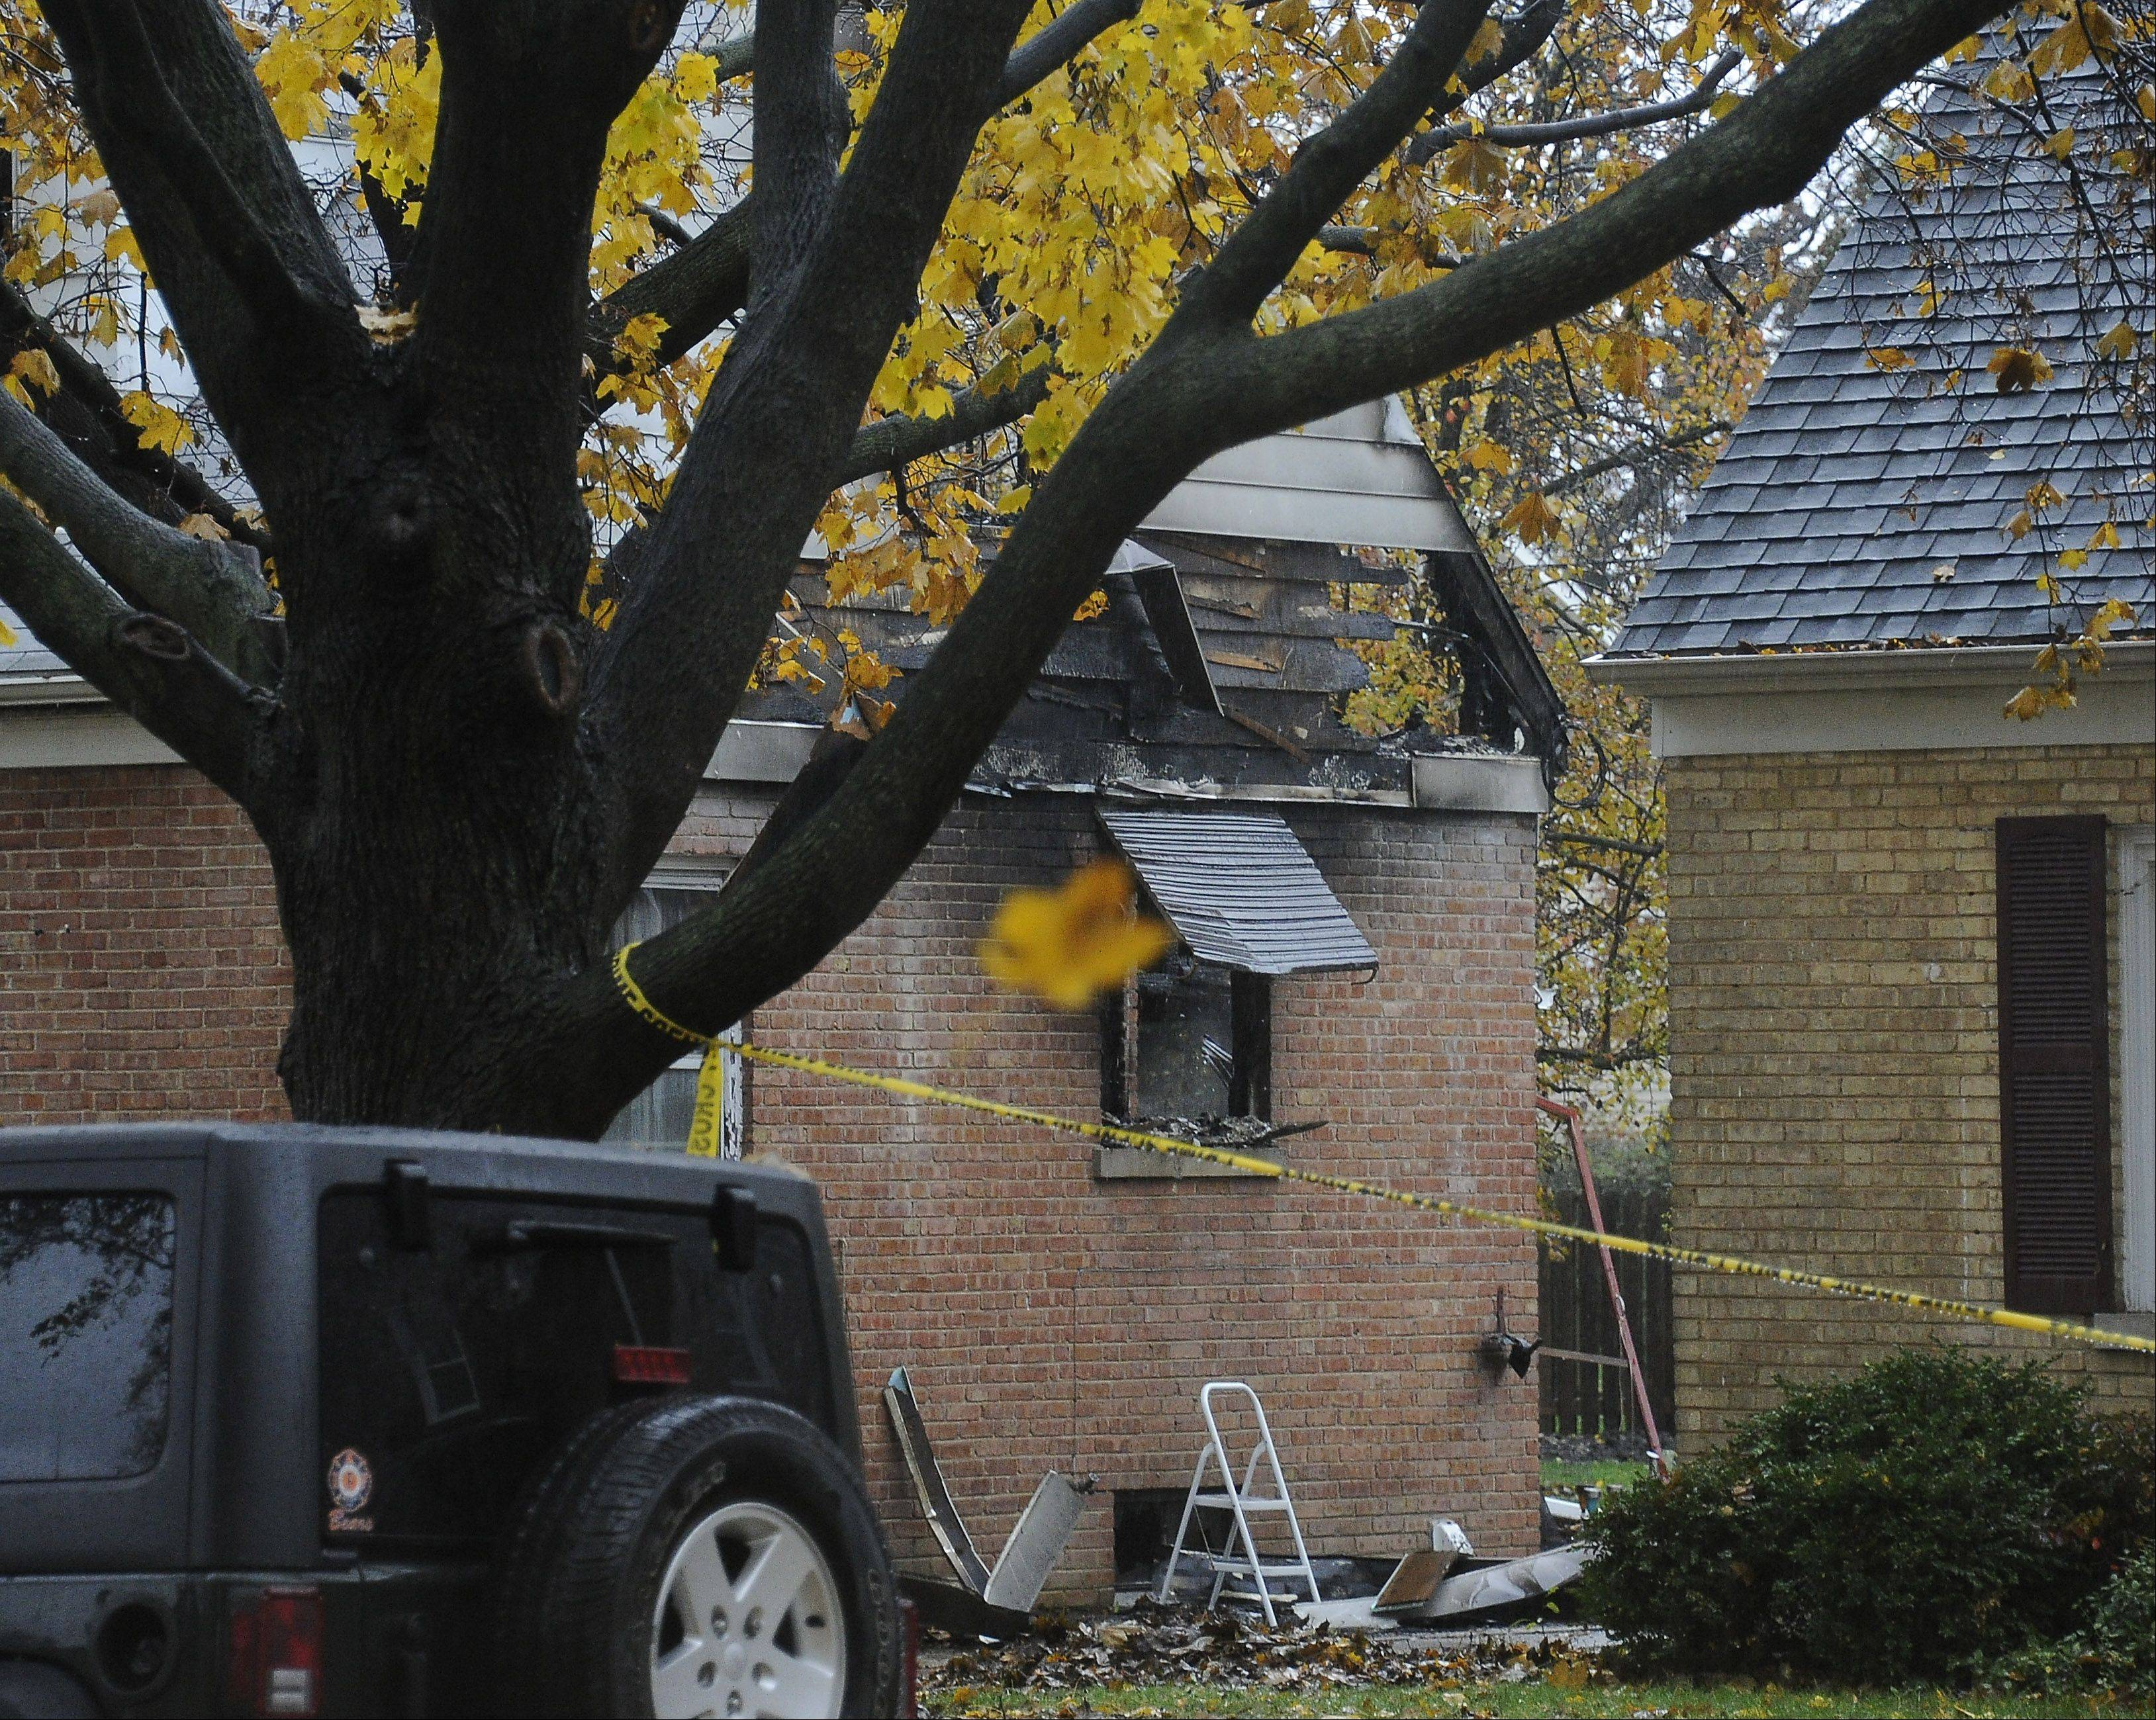 Arlington Heights fire officials don't suspect anything suspicious about the fatal fire that is believed to have started in a bedroom area.